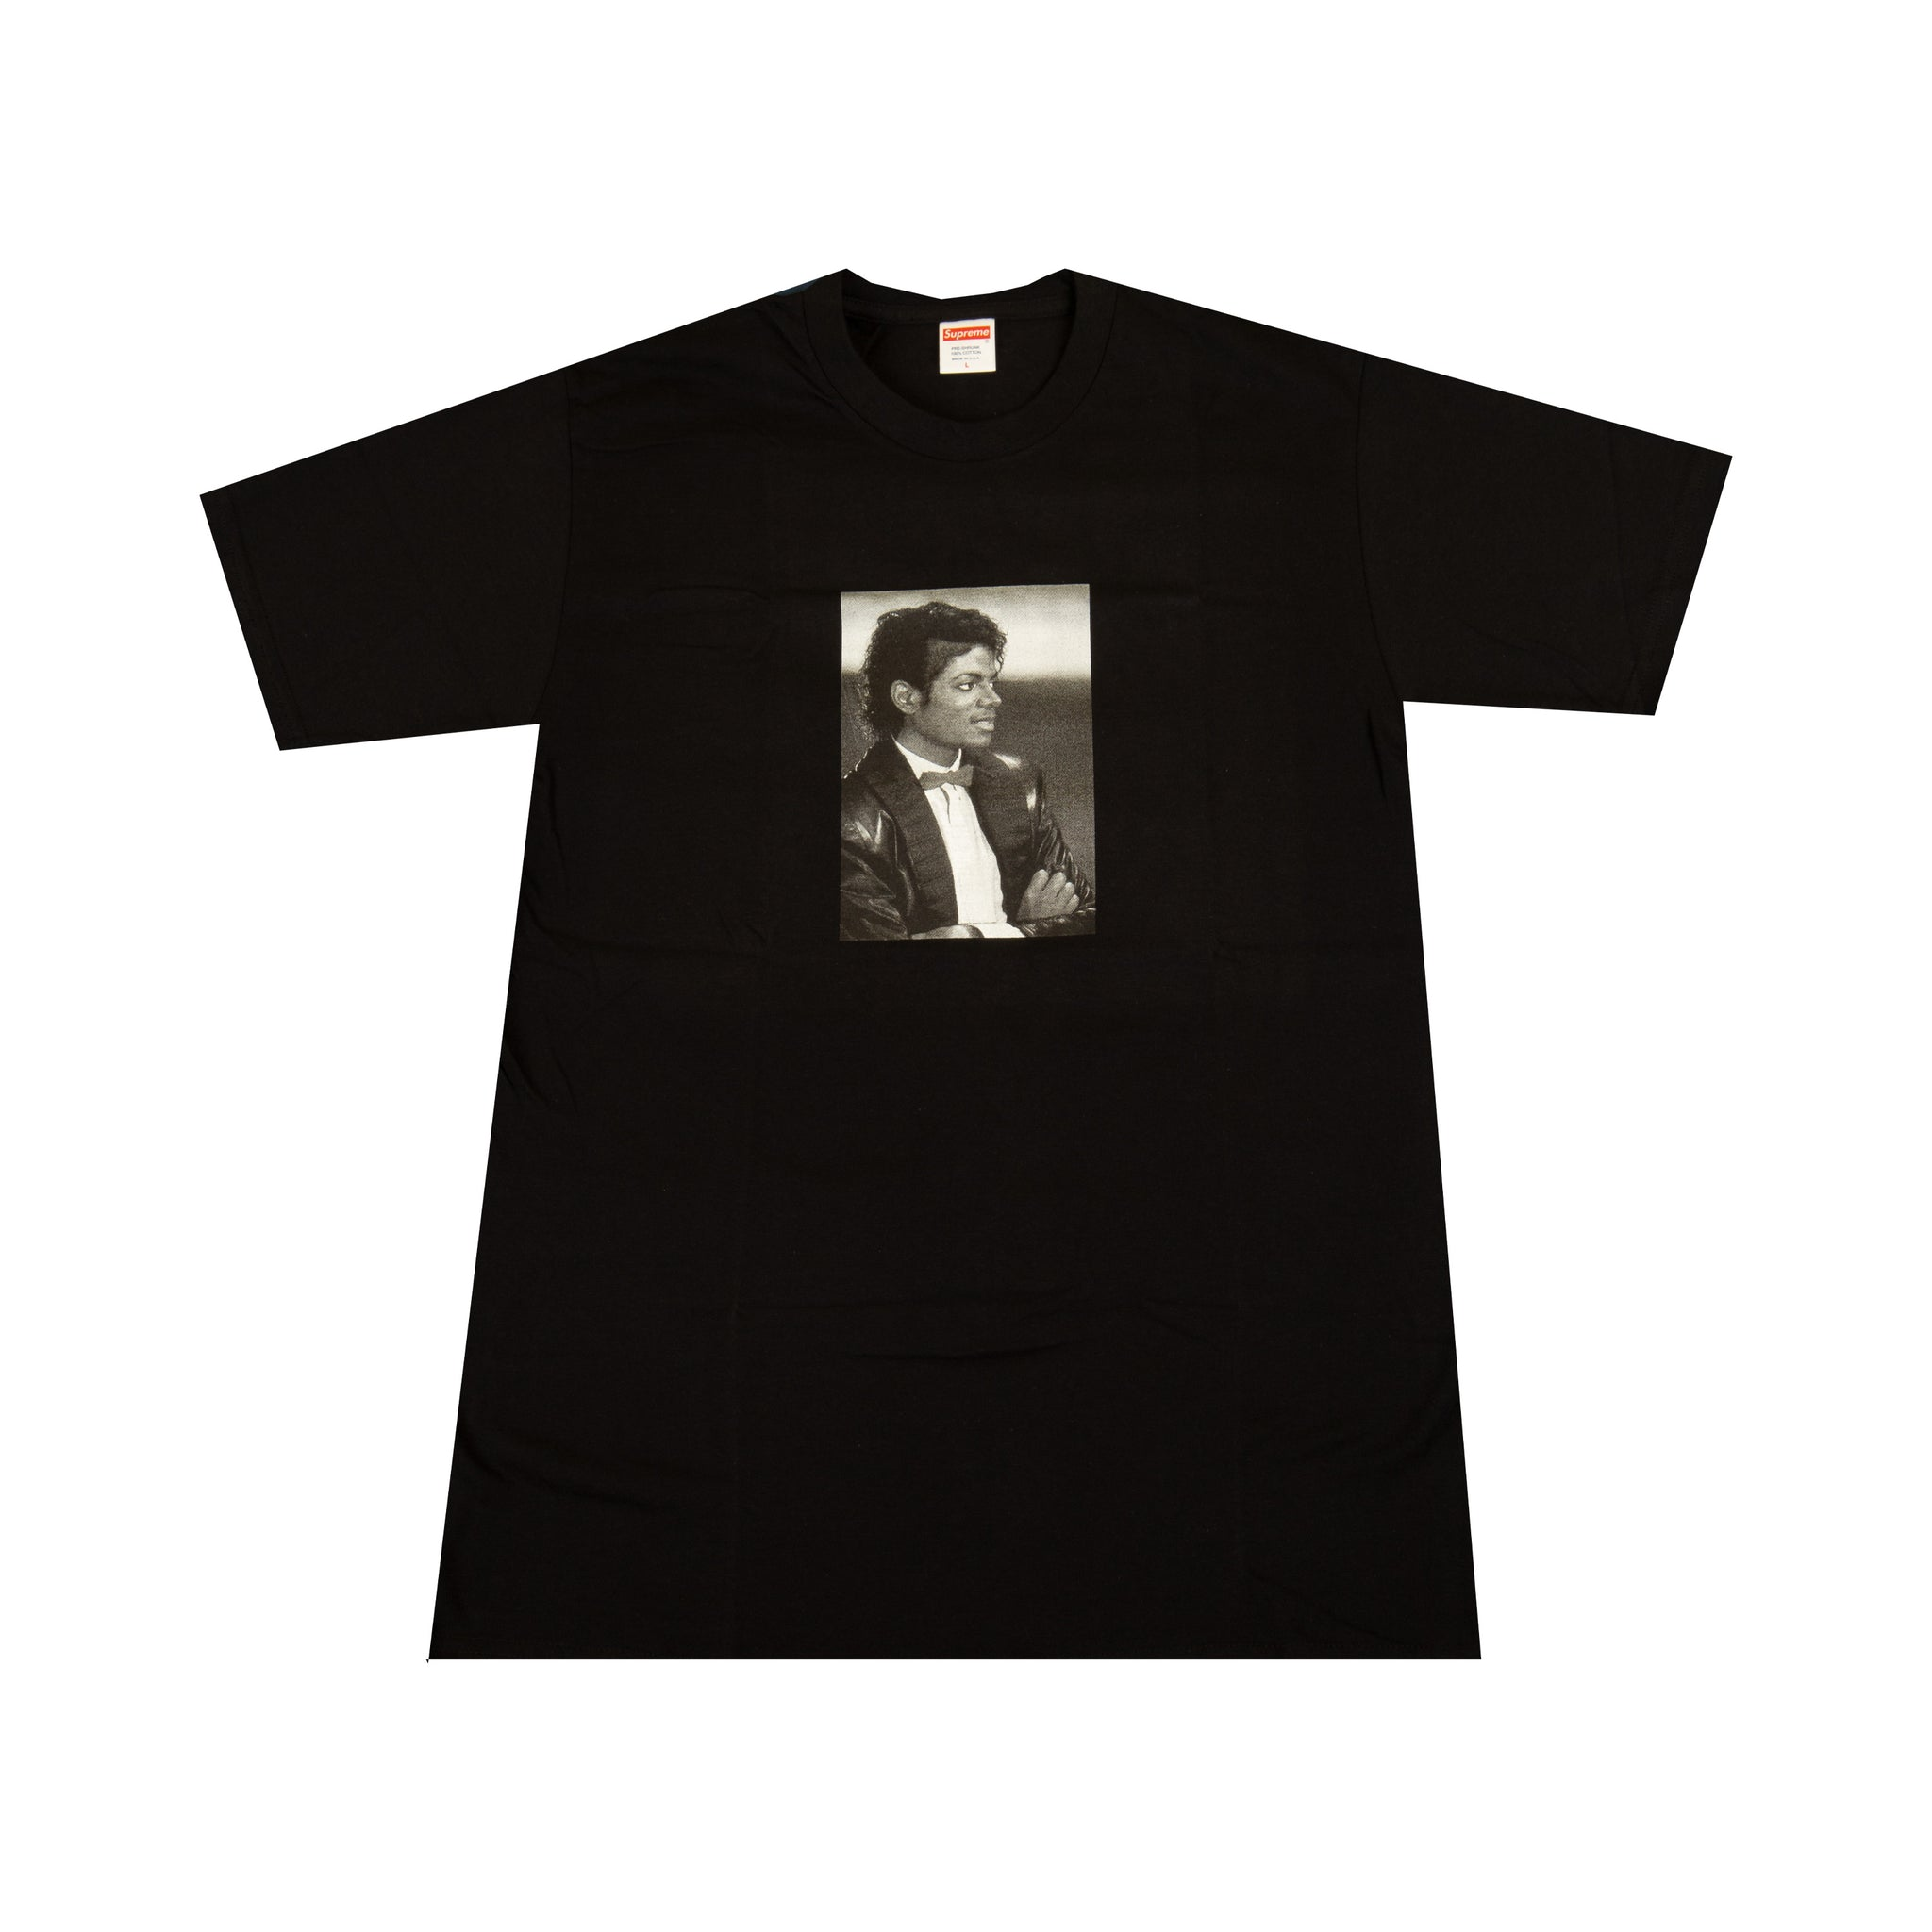 Supreme Black Michael Jackson Tee